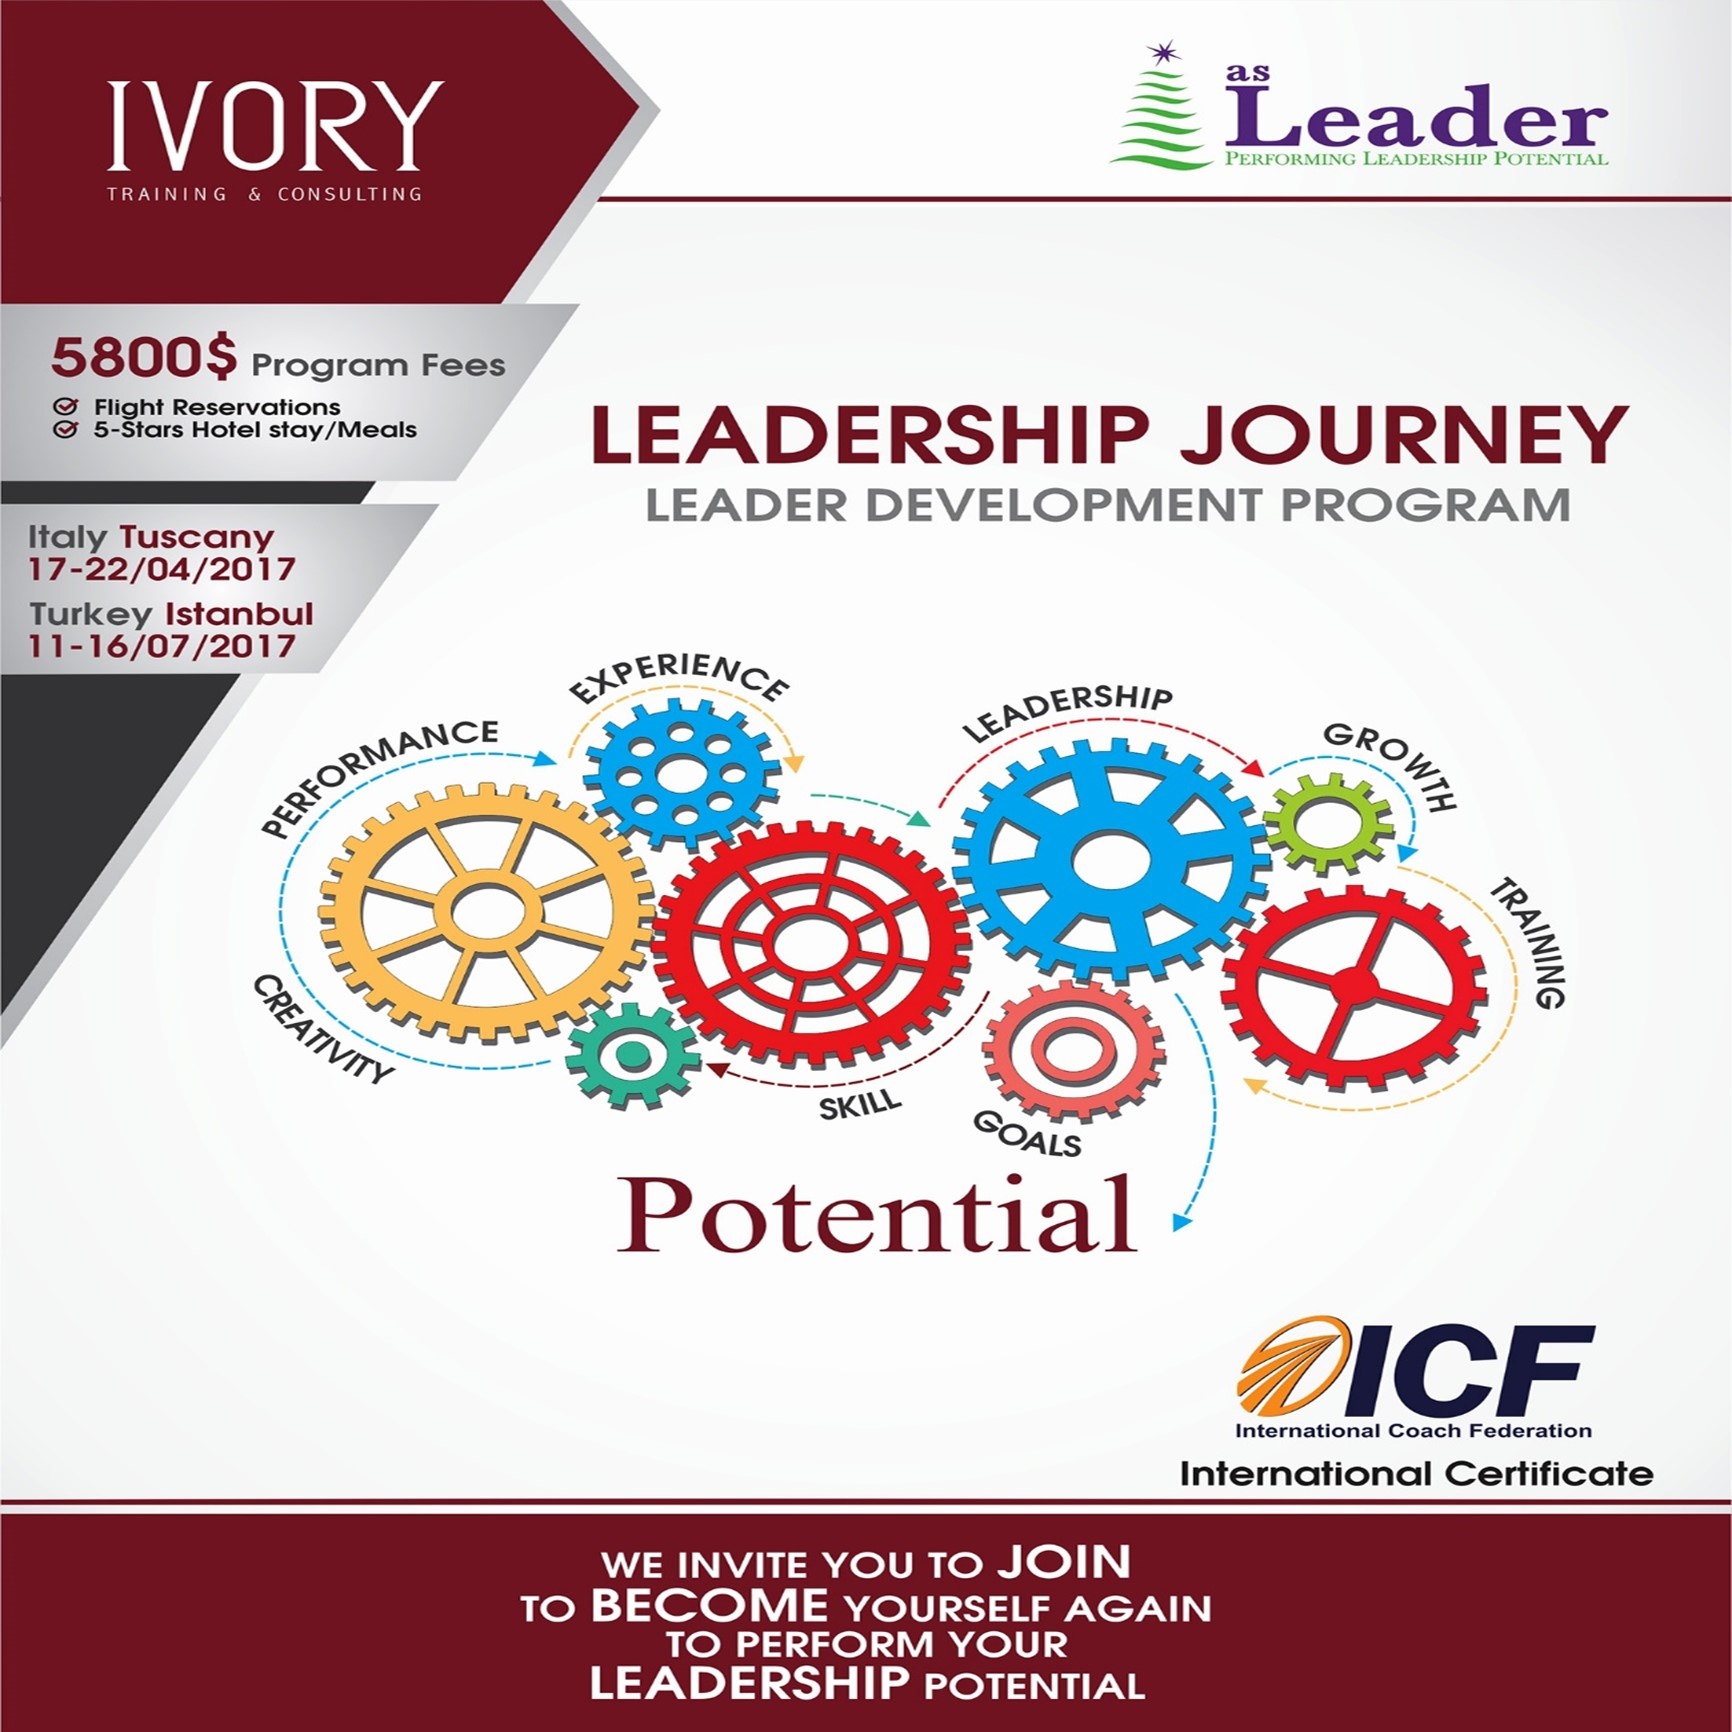 http://ivorytraining.com/mail_temp_ar/flyer/506_1.JPG